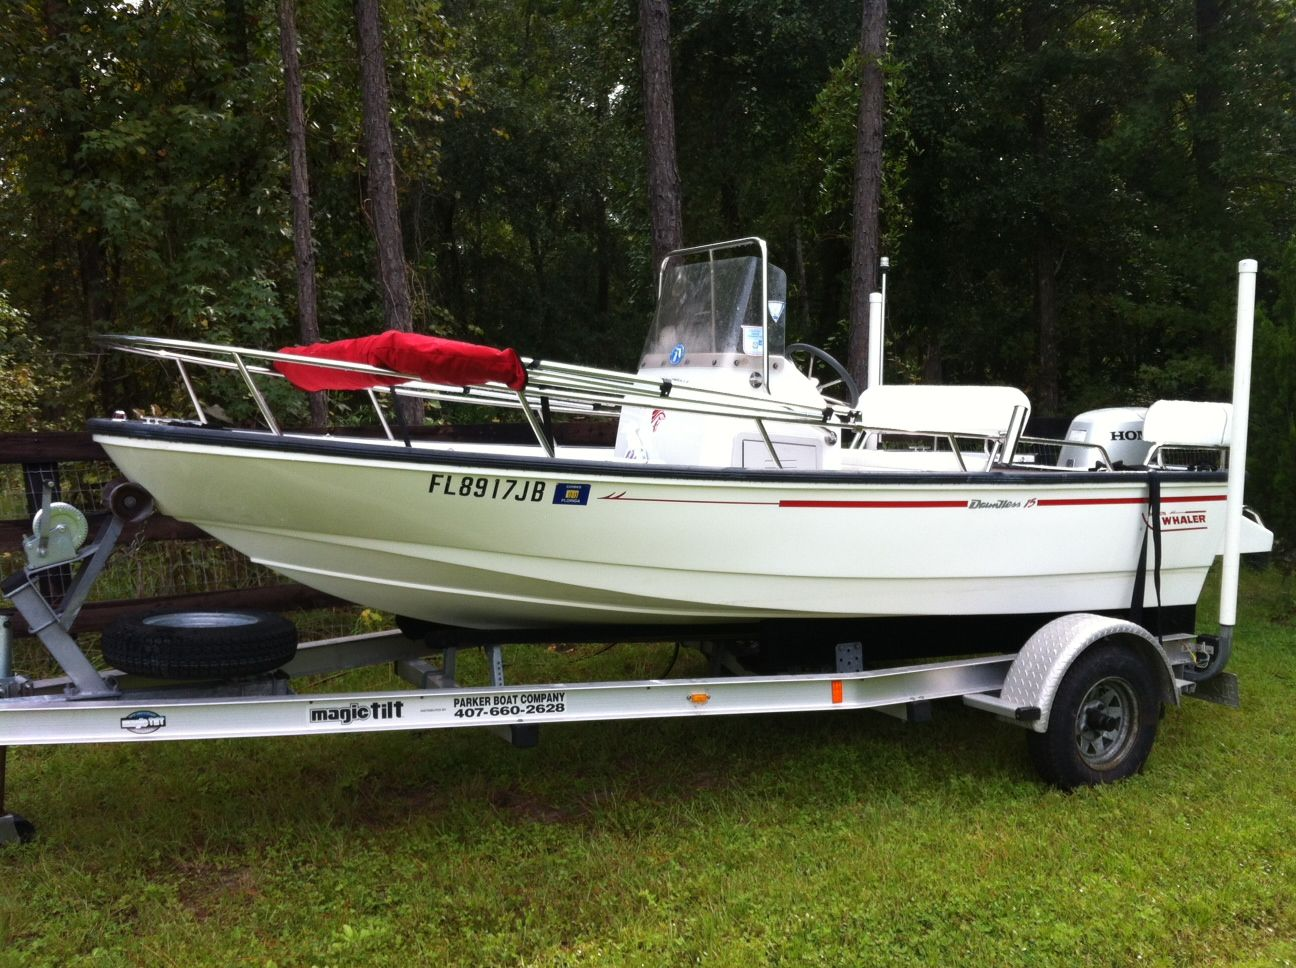 1995 Boston Whaler 15 Dauntless - Sold - The Hull Truth